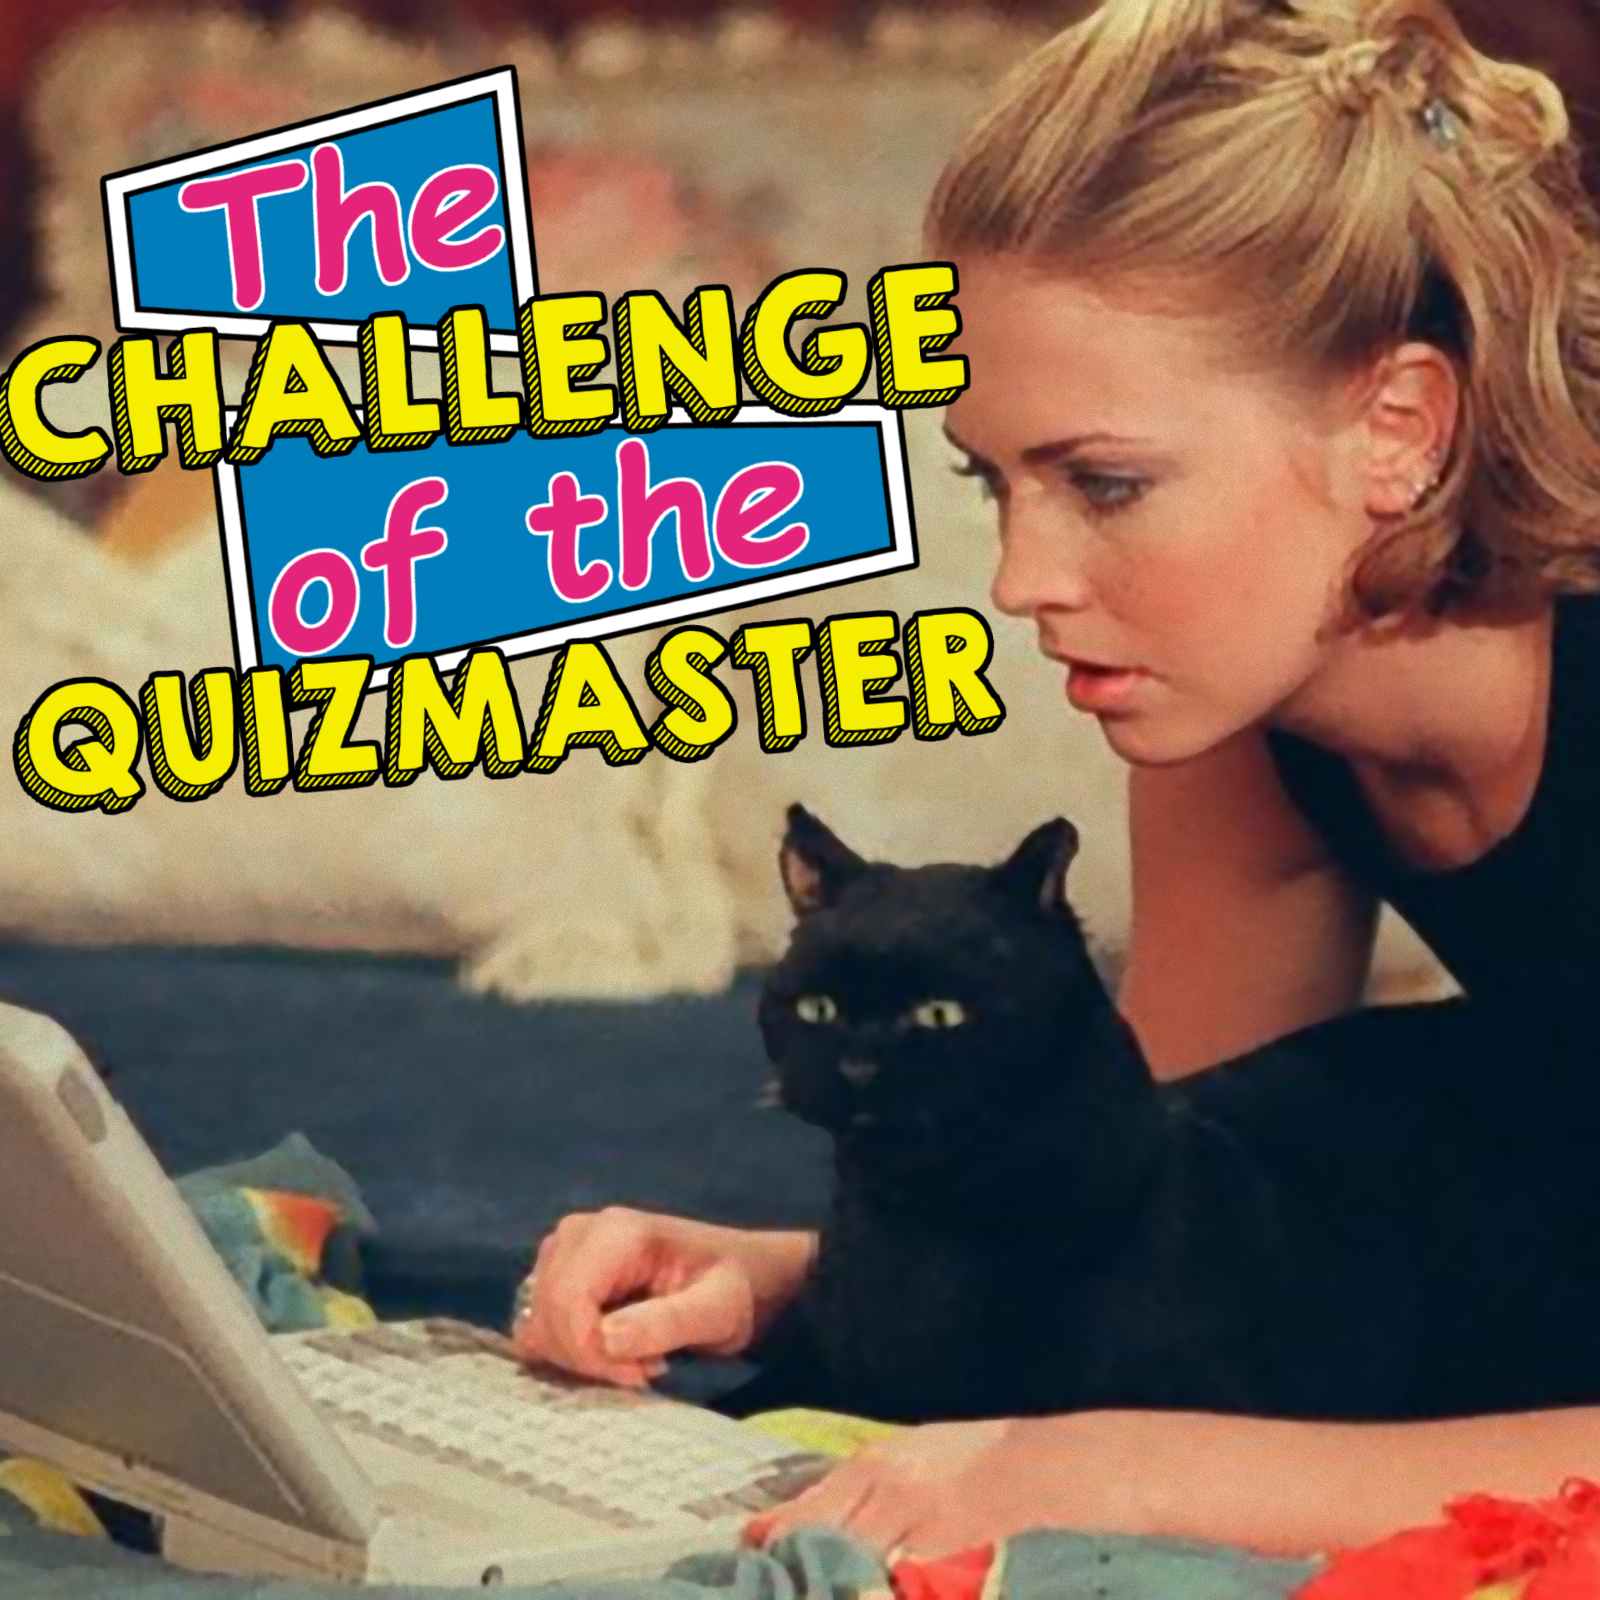 The Challenge of the Quizmaster: the Trials of Cris, pt2